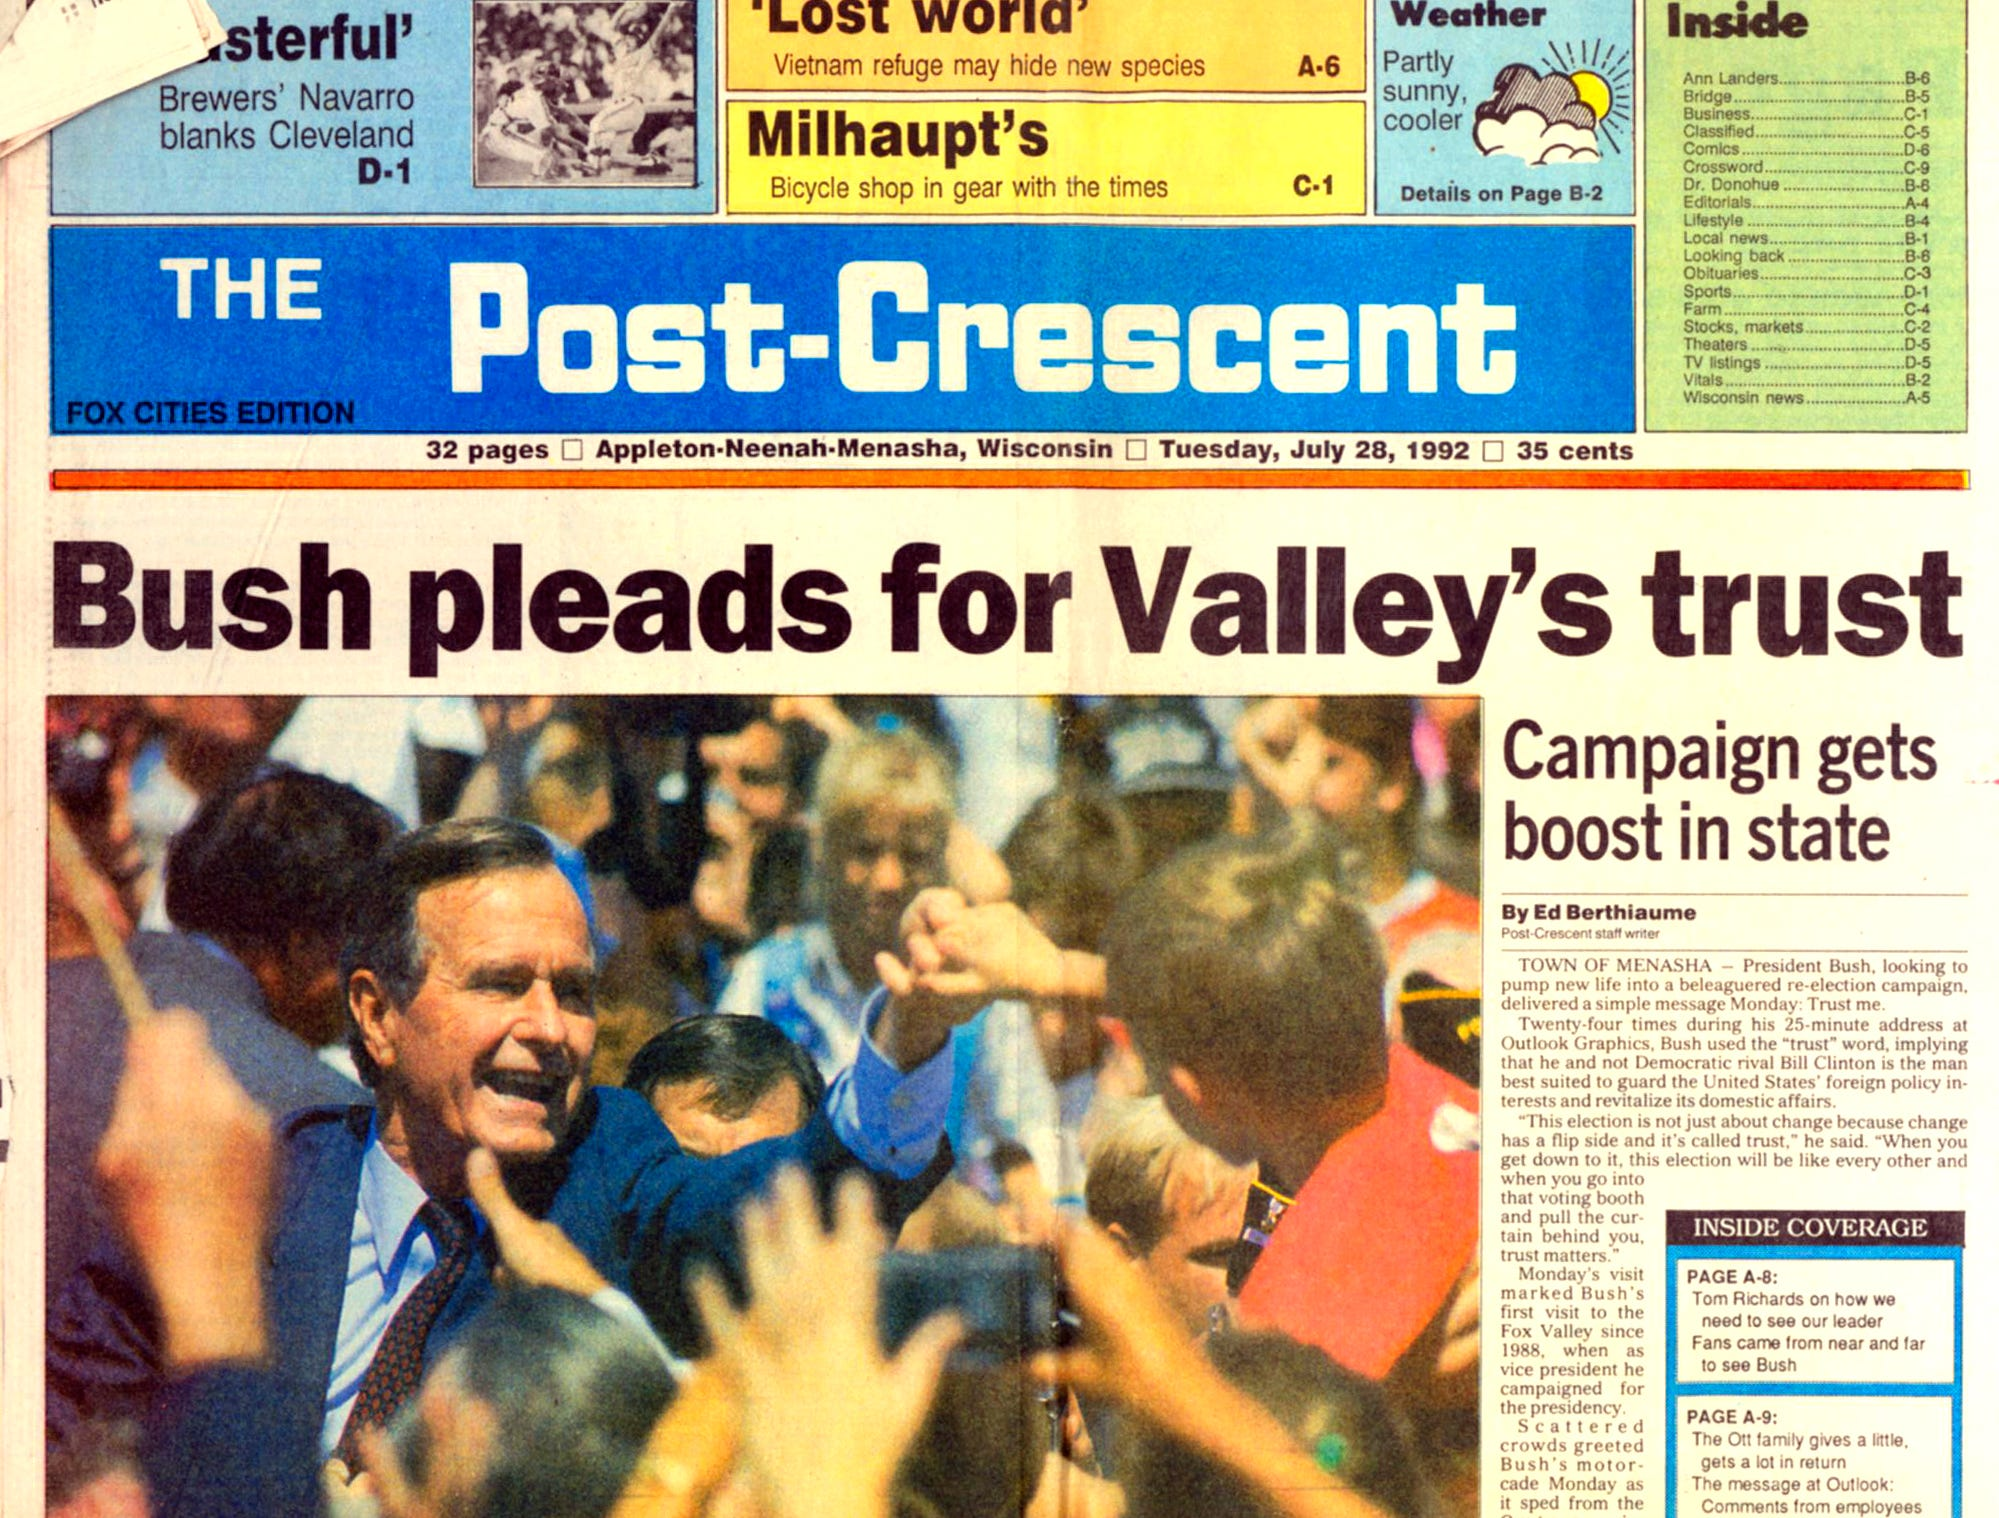 July 28, 1992. President George H. W. Bush pleads for Valley's trust. Campaign gets boost in state story by Ed Berthiaume in The Post-Crescent.